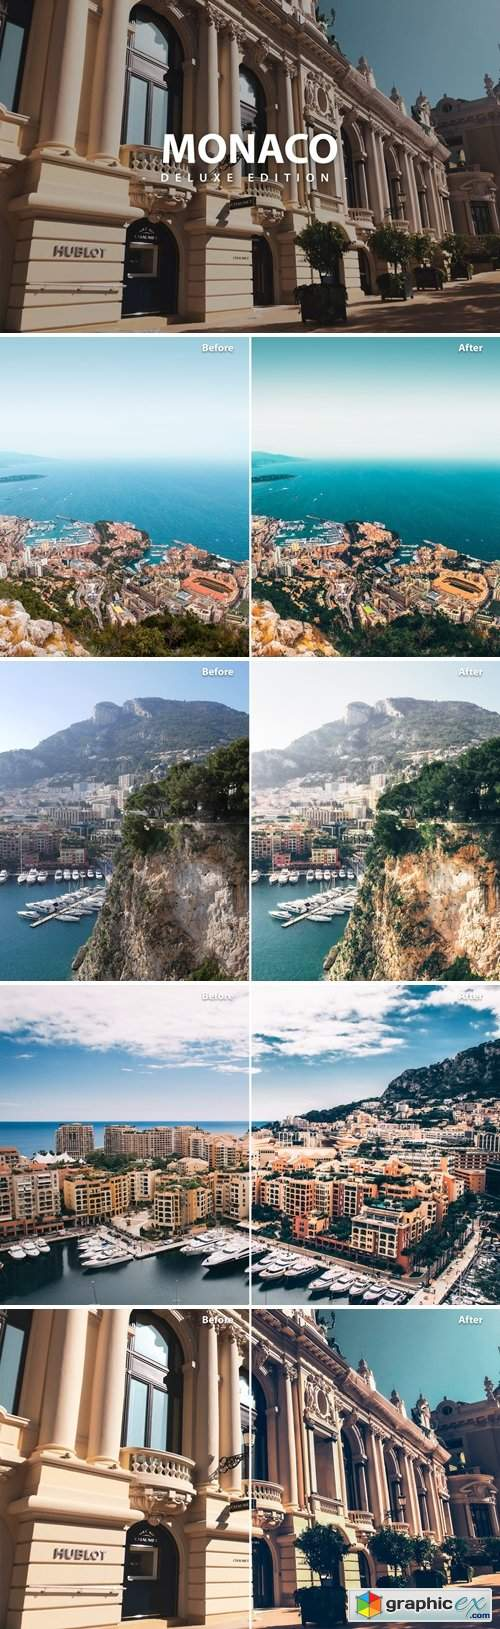 Monaco Pack | Deluxe edition for Mobile and Pc